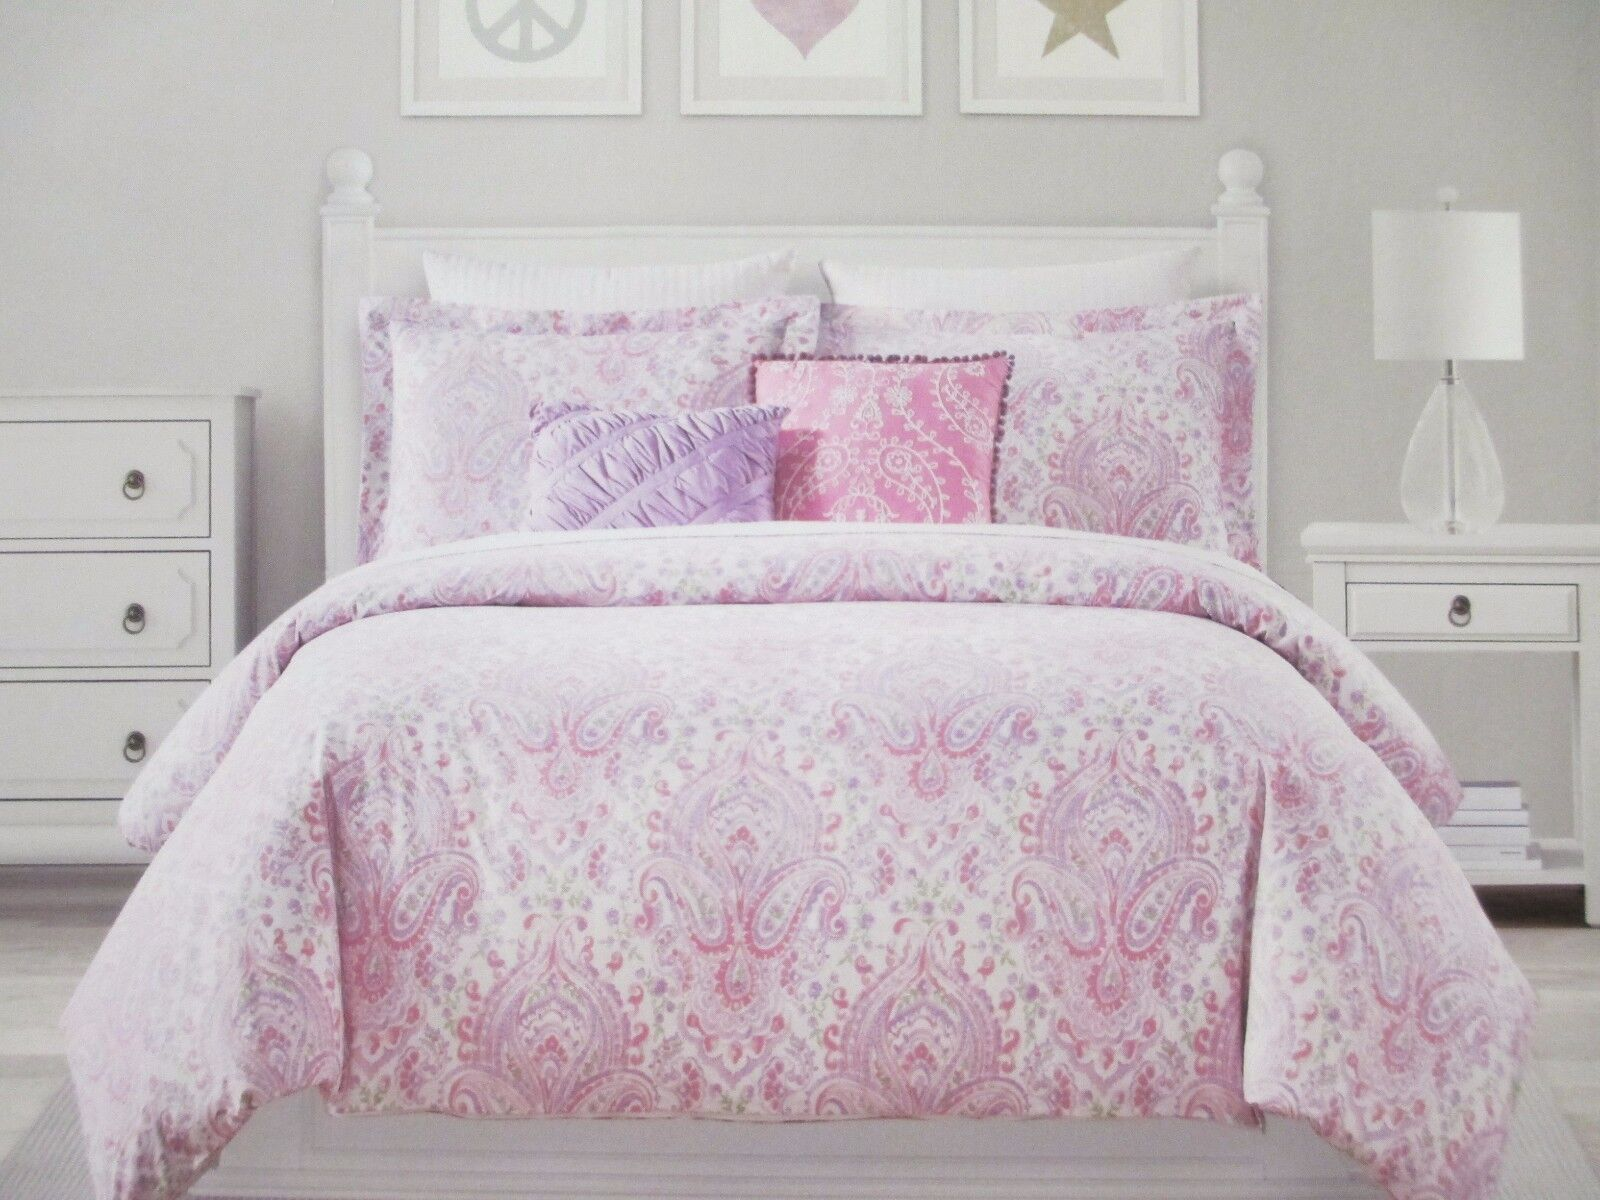 Cynthia Rowley York Comforter 4 Piece Set Twin Floral And Paisley Pattern For Sale Online Ebay